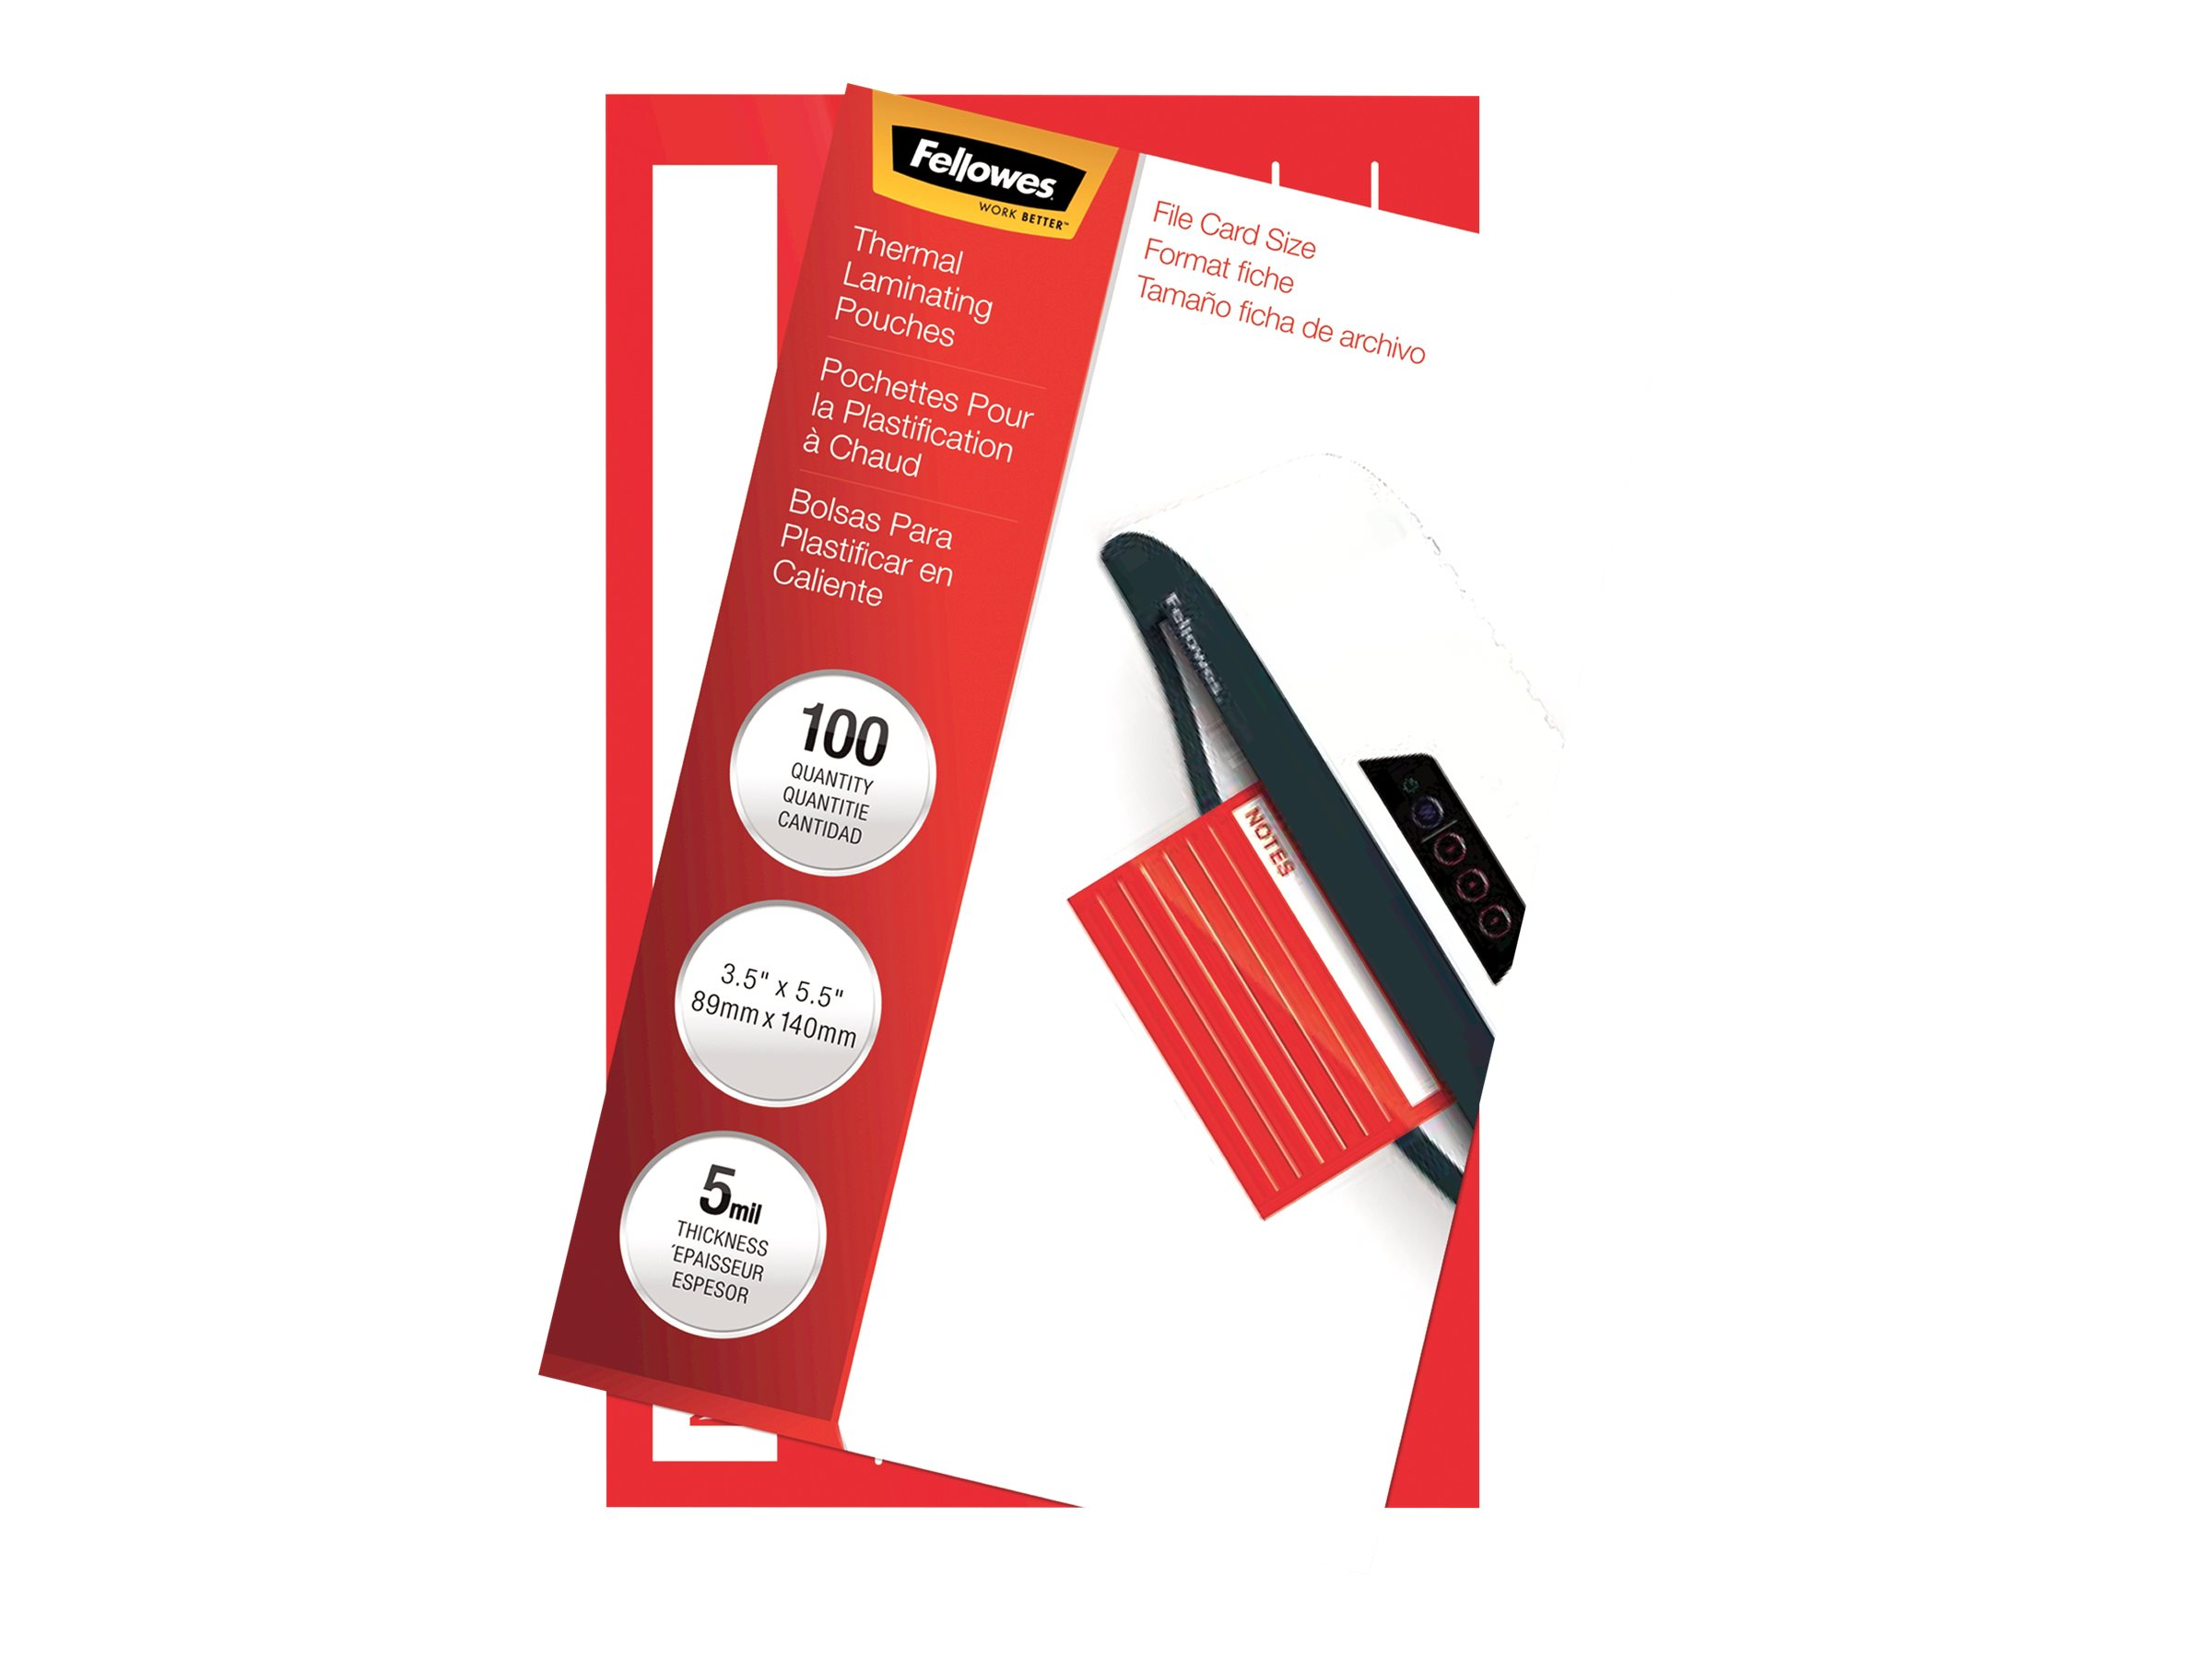 Fellowes File Card - 100-pack - clear - 89 x 140 mm - glossy laminating pouches